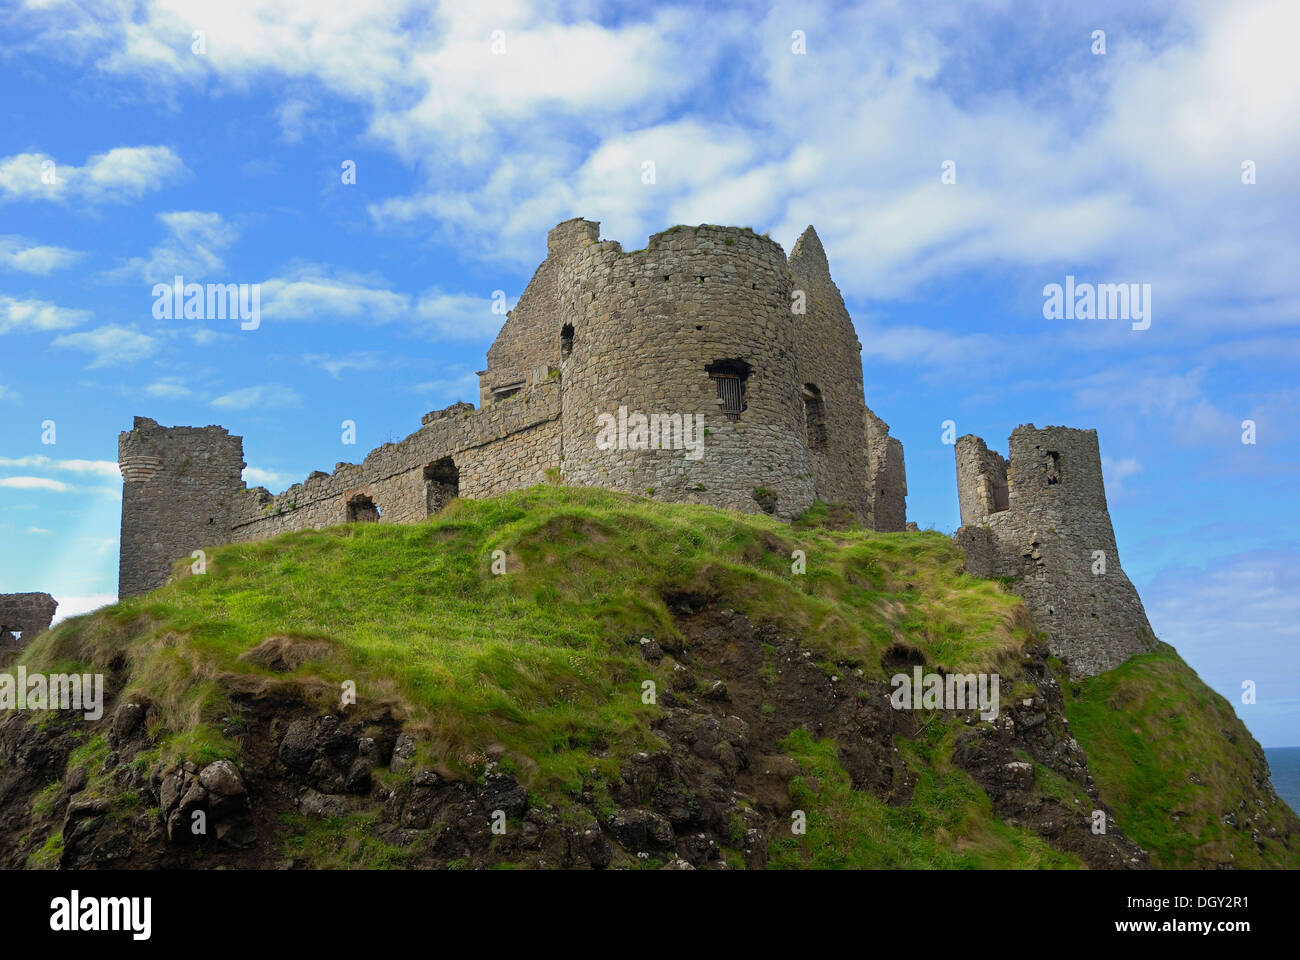 Ancient ruins Dunluce Castle on a cliff on the coast, County Antrim, Northern Ireland, United Kingdom, Europe - Stock Image